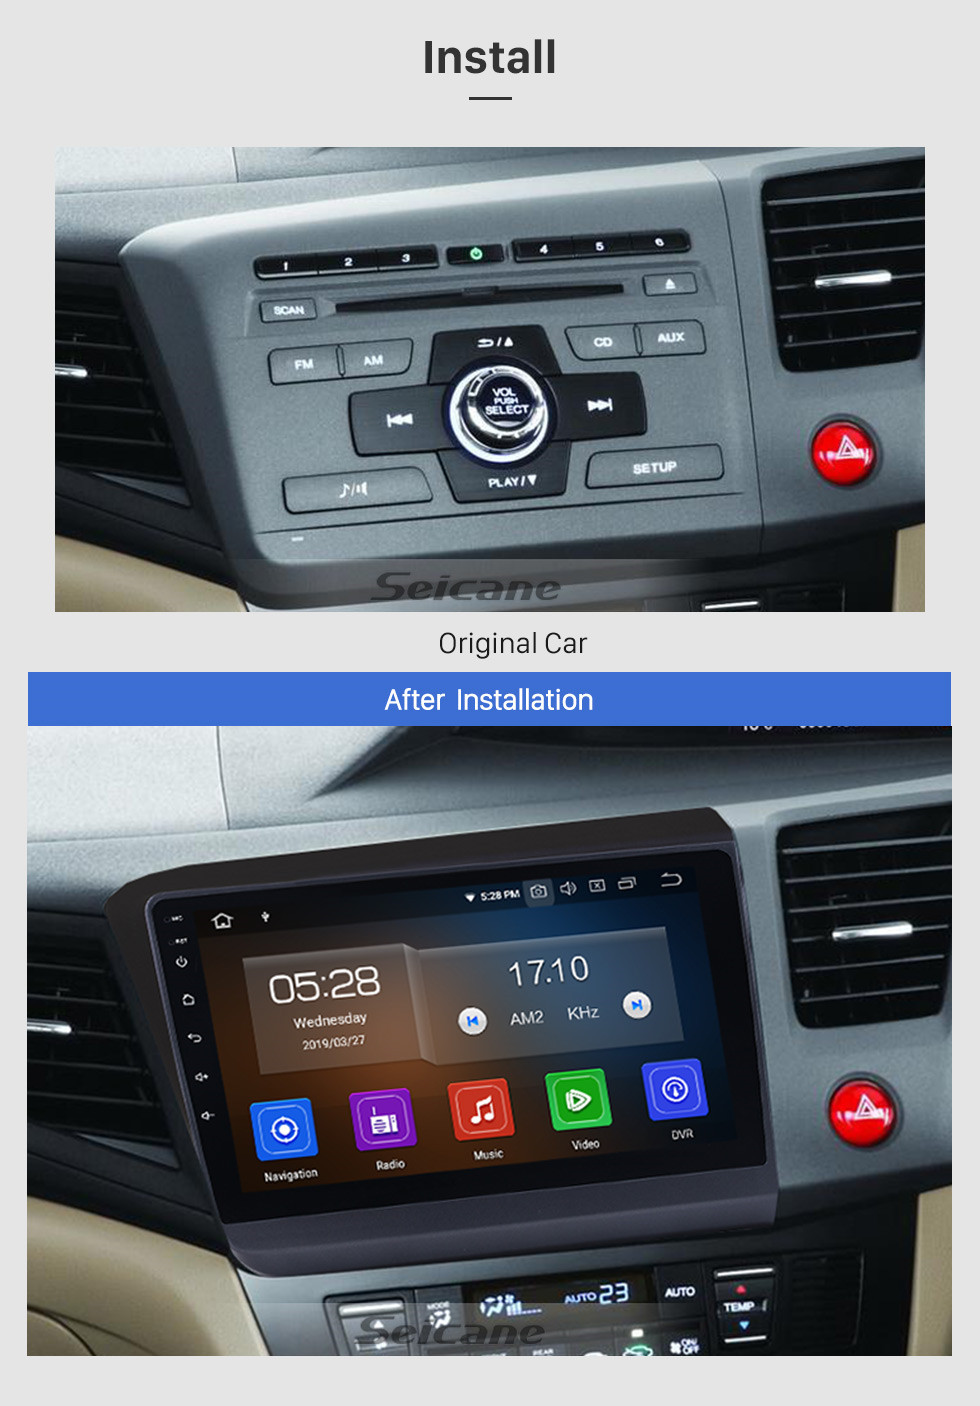 Seicane 2012 Honda Civic Right Hand Driving Car GPS Navigation Android 9.0 HD Touchescreen 9 inch Radio Steering Wheel Control Bluetooth music 4G Wifi USB support OBD2 DVD Player